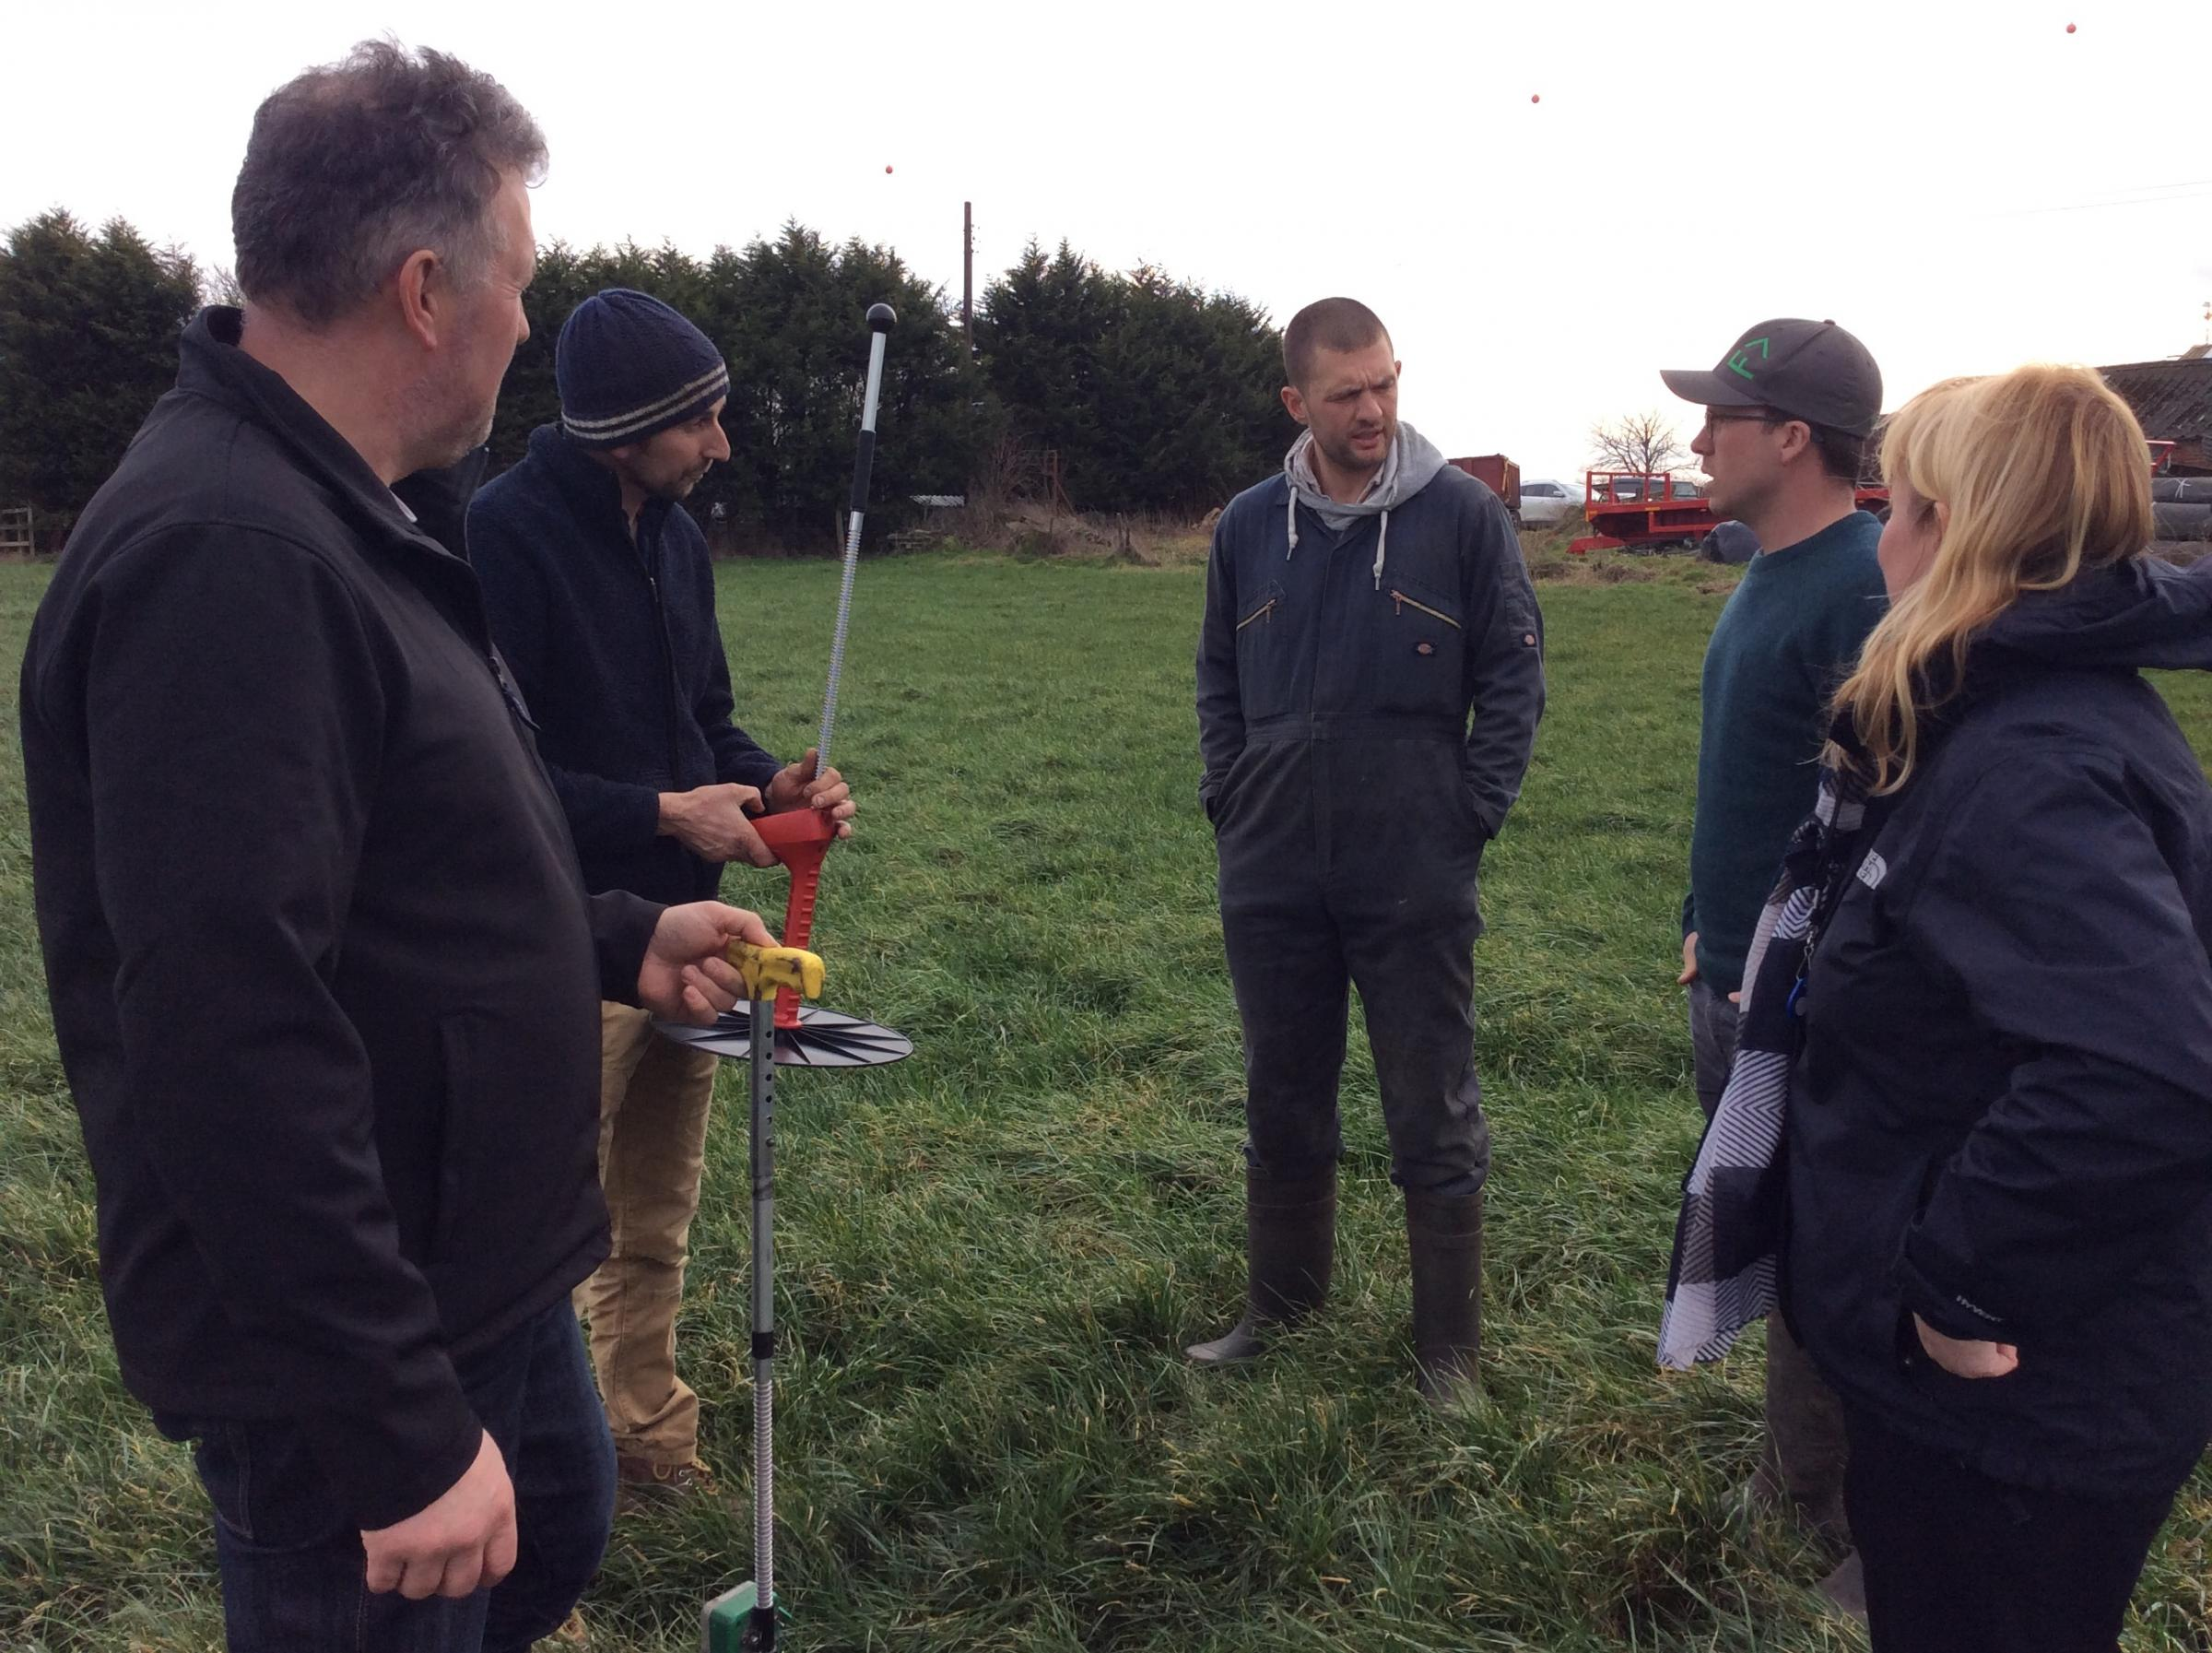 GrassCheckGB pilot farmers test out Plate Meters at Fourth Milestone Farm near York during a Farmer set-up meeting for the new grassland improvement initiative